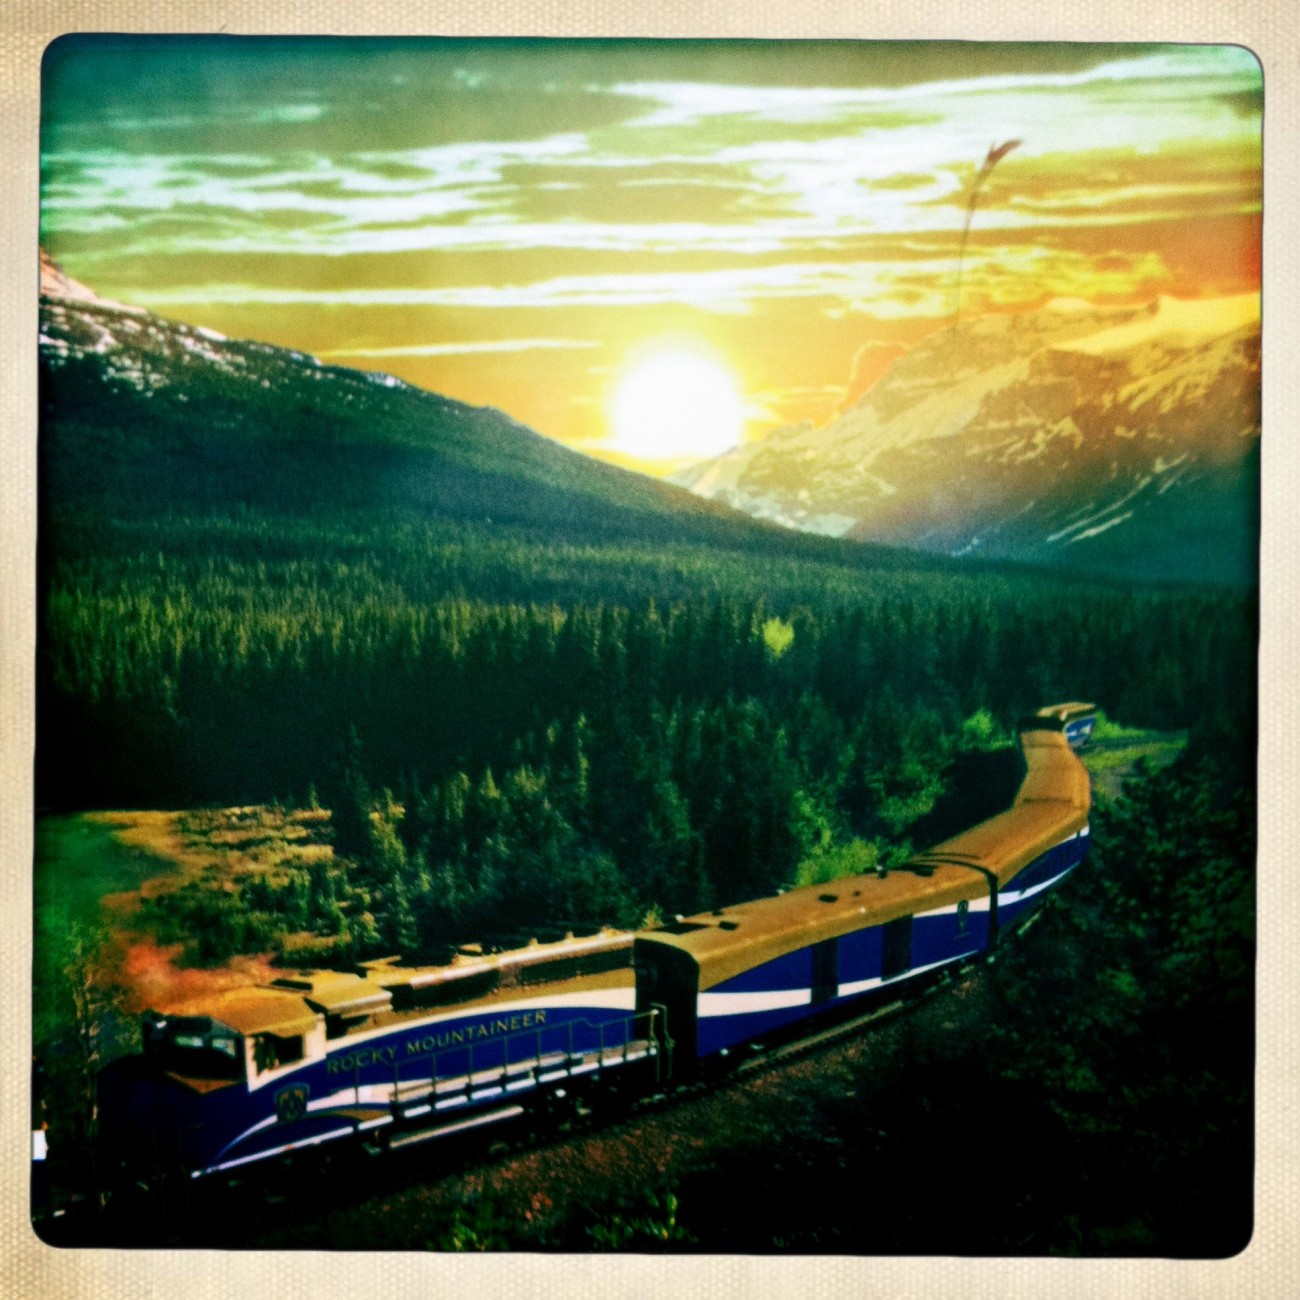 RockyMountaineer17